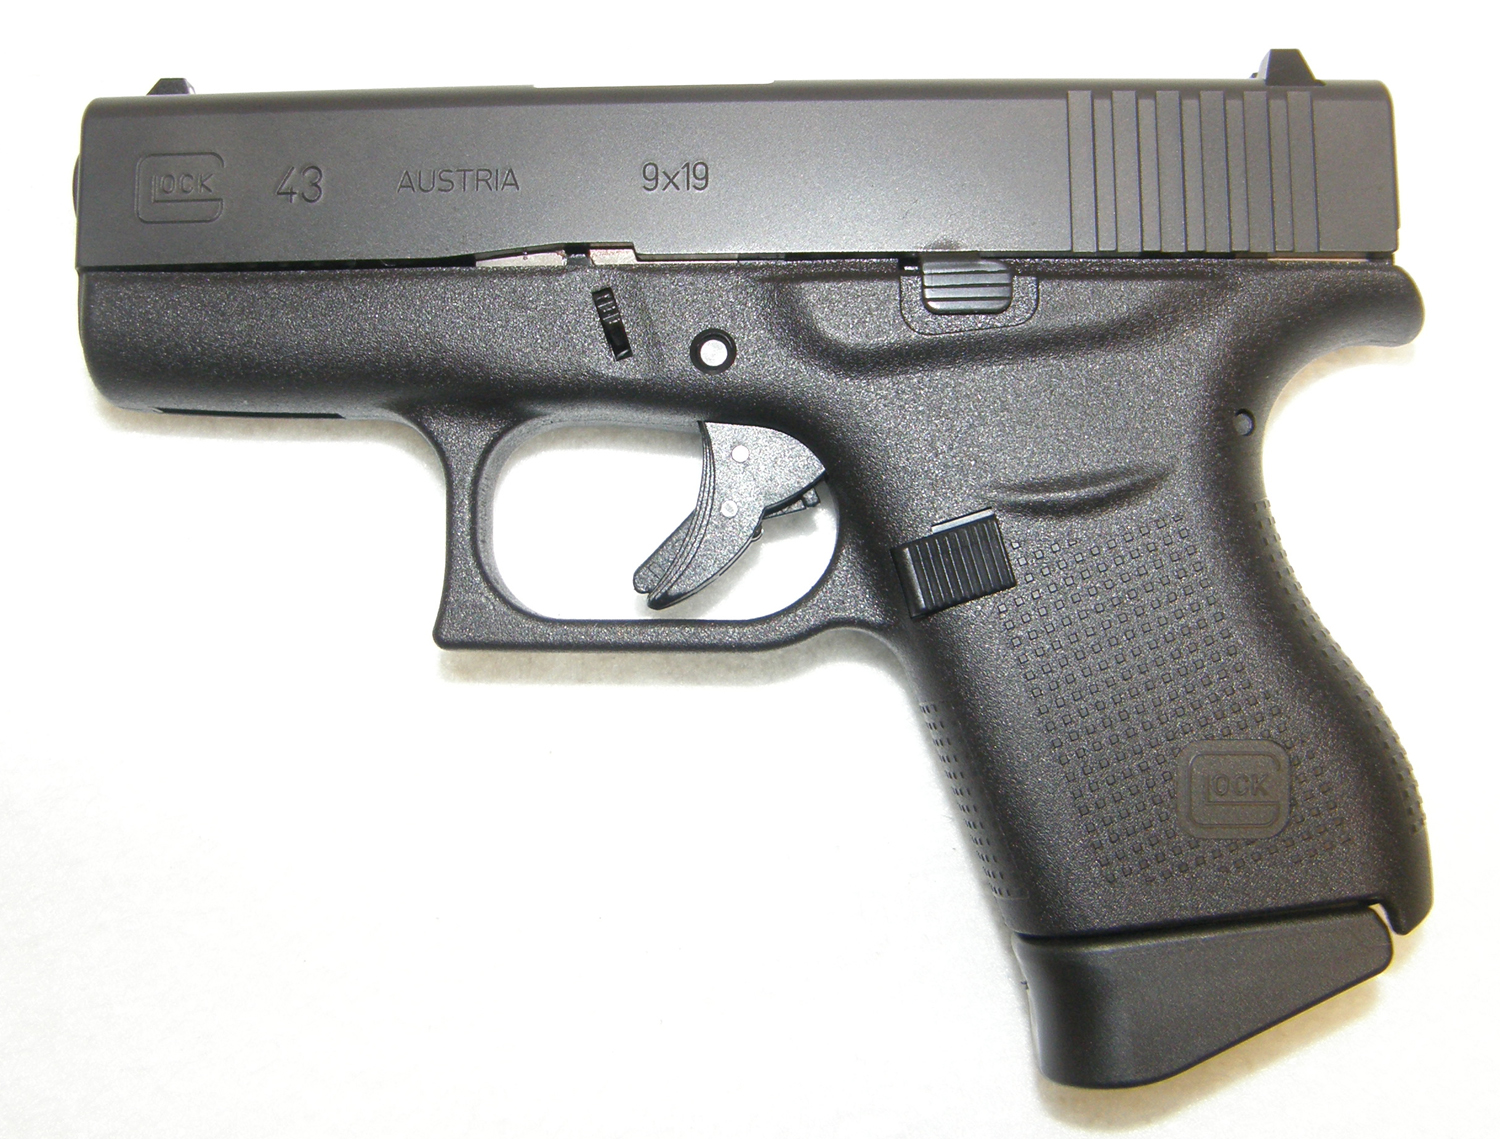 Glock 43 9mm Compact Semi-Auto Pistol (New) | Rare Collectible Guns, Antiques, Collector ...